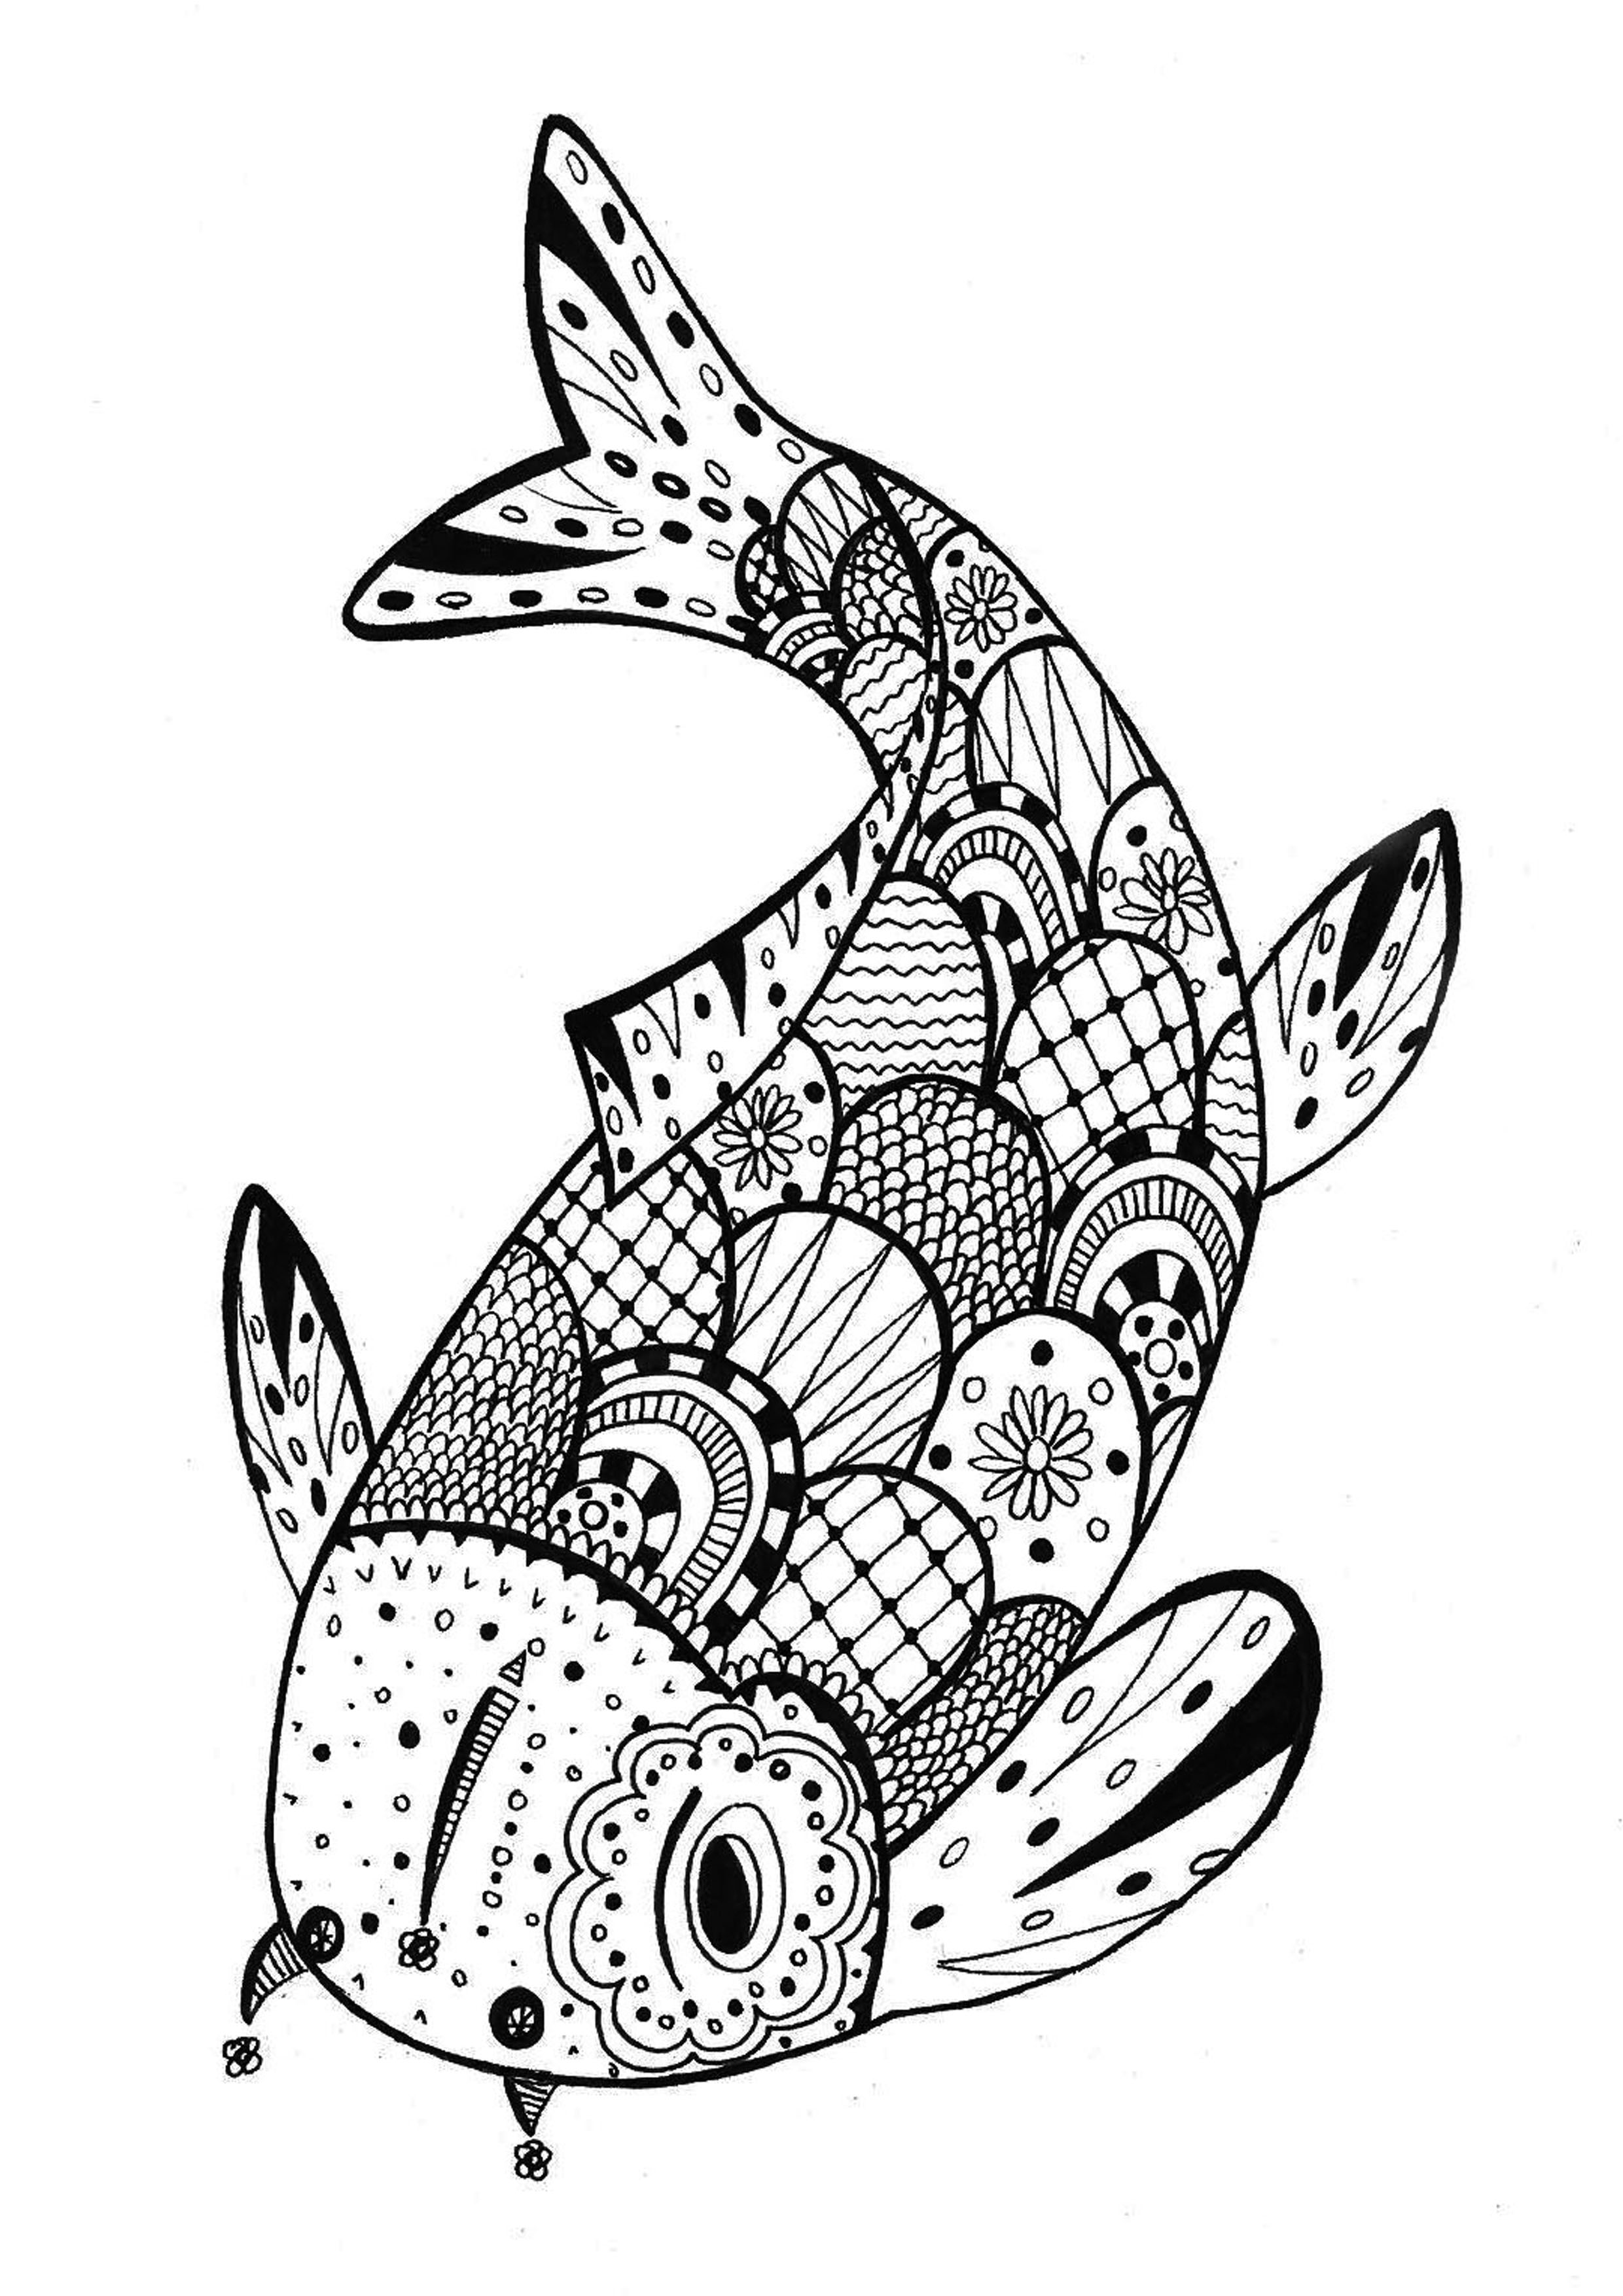 coloring pages for fish free printable fish coloring pages for kids cool2bkids for pages fish coloring